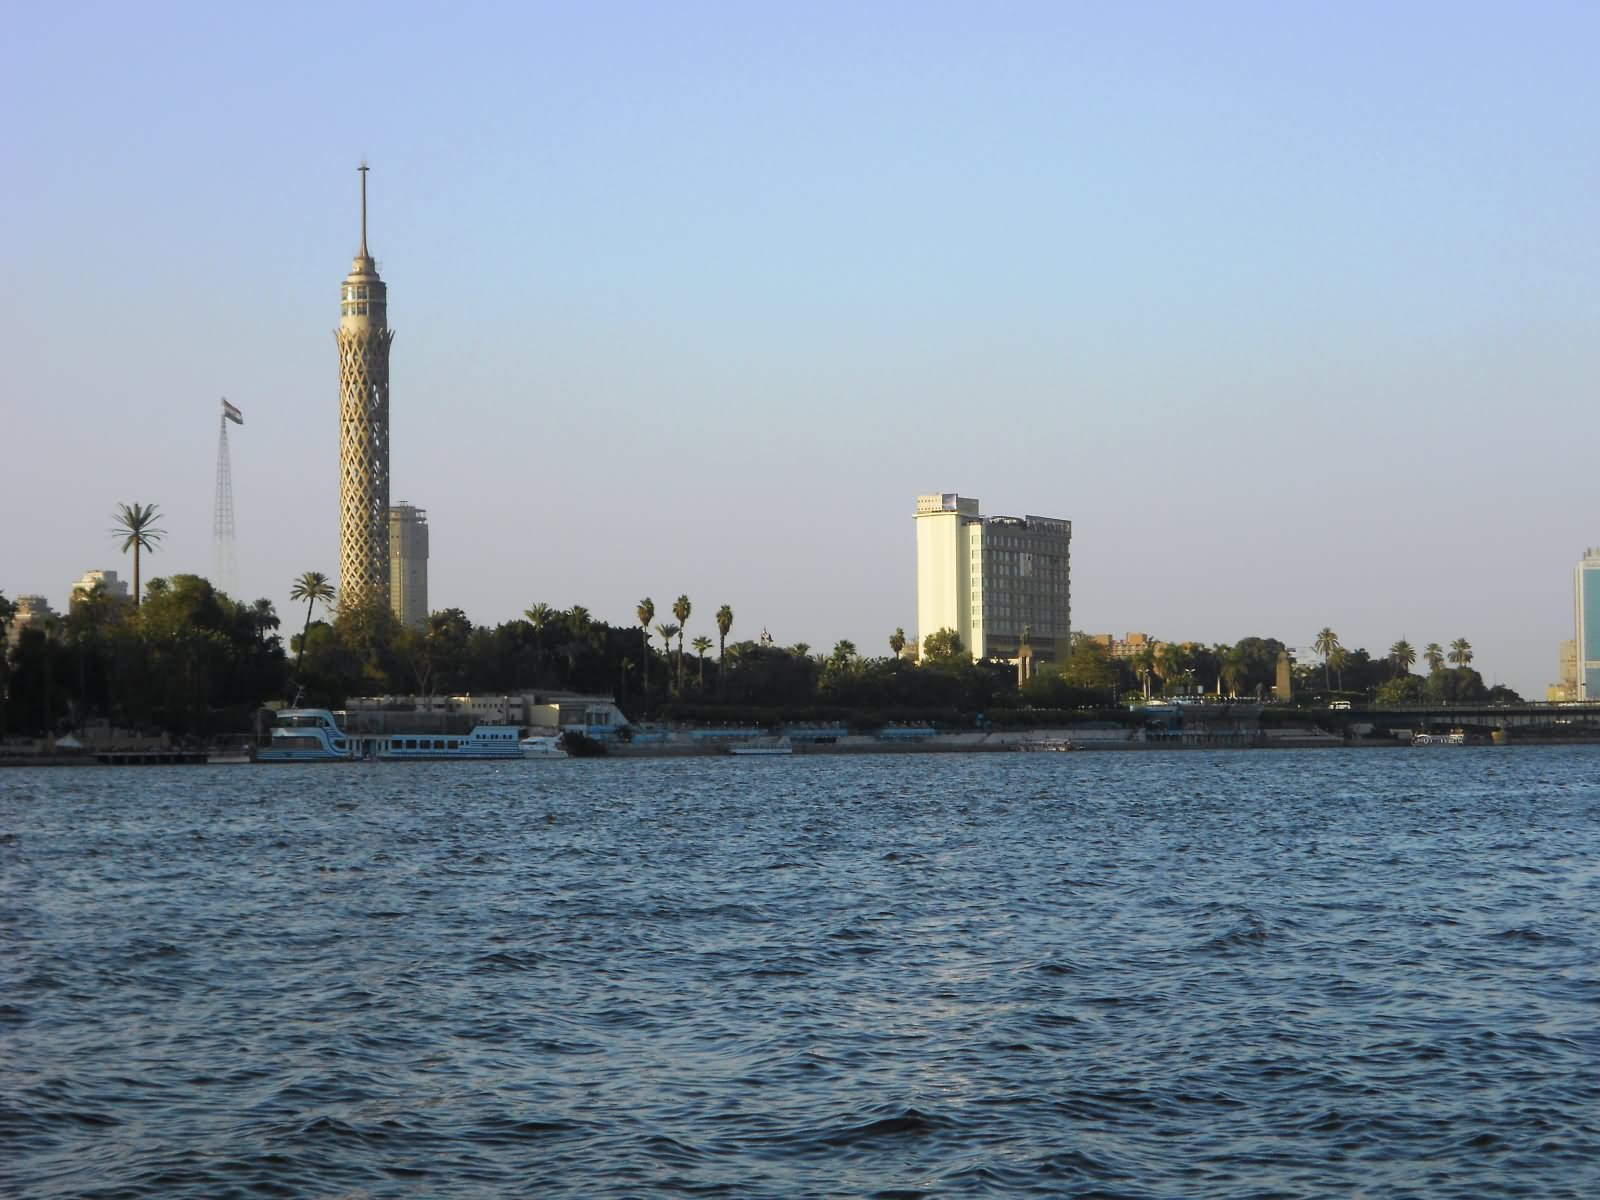 Cairo Tower From The Vantage Point Of A Boat In The Nile